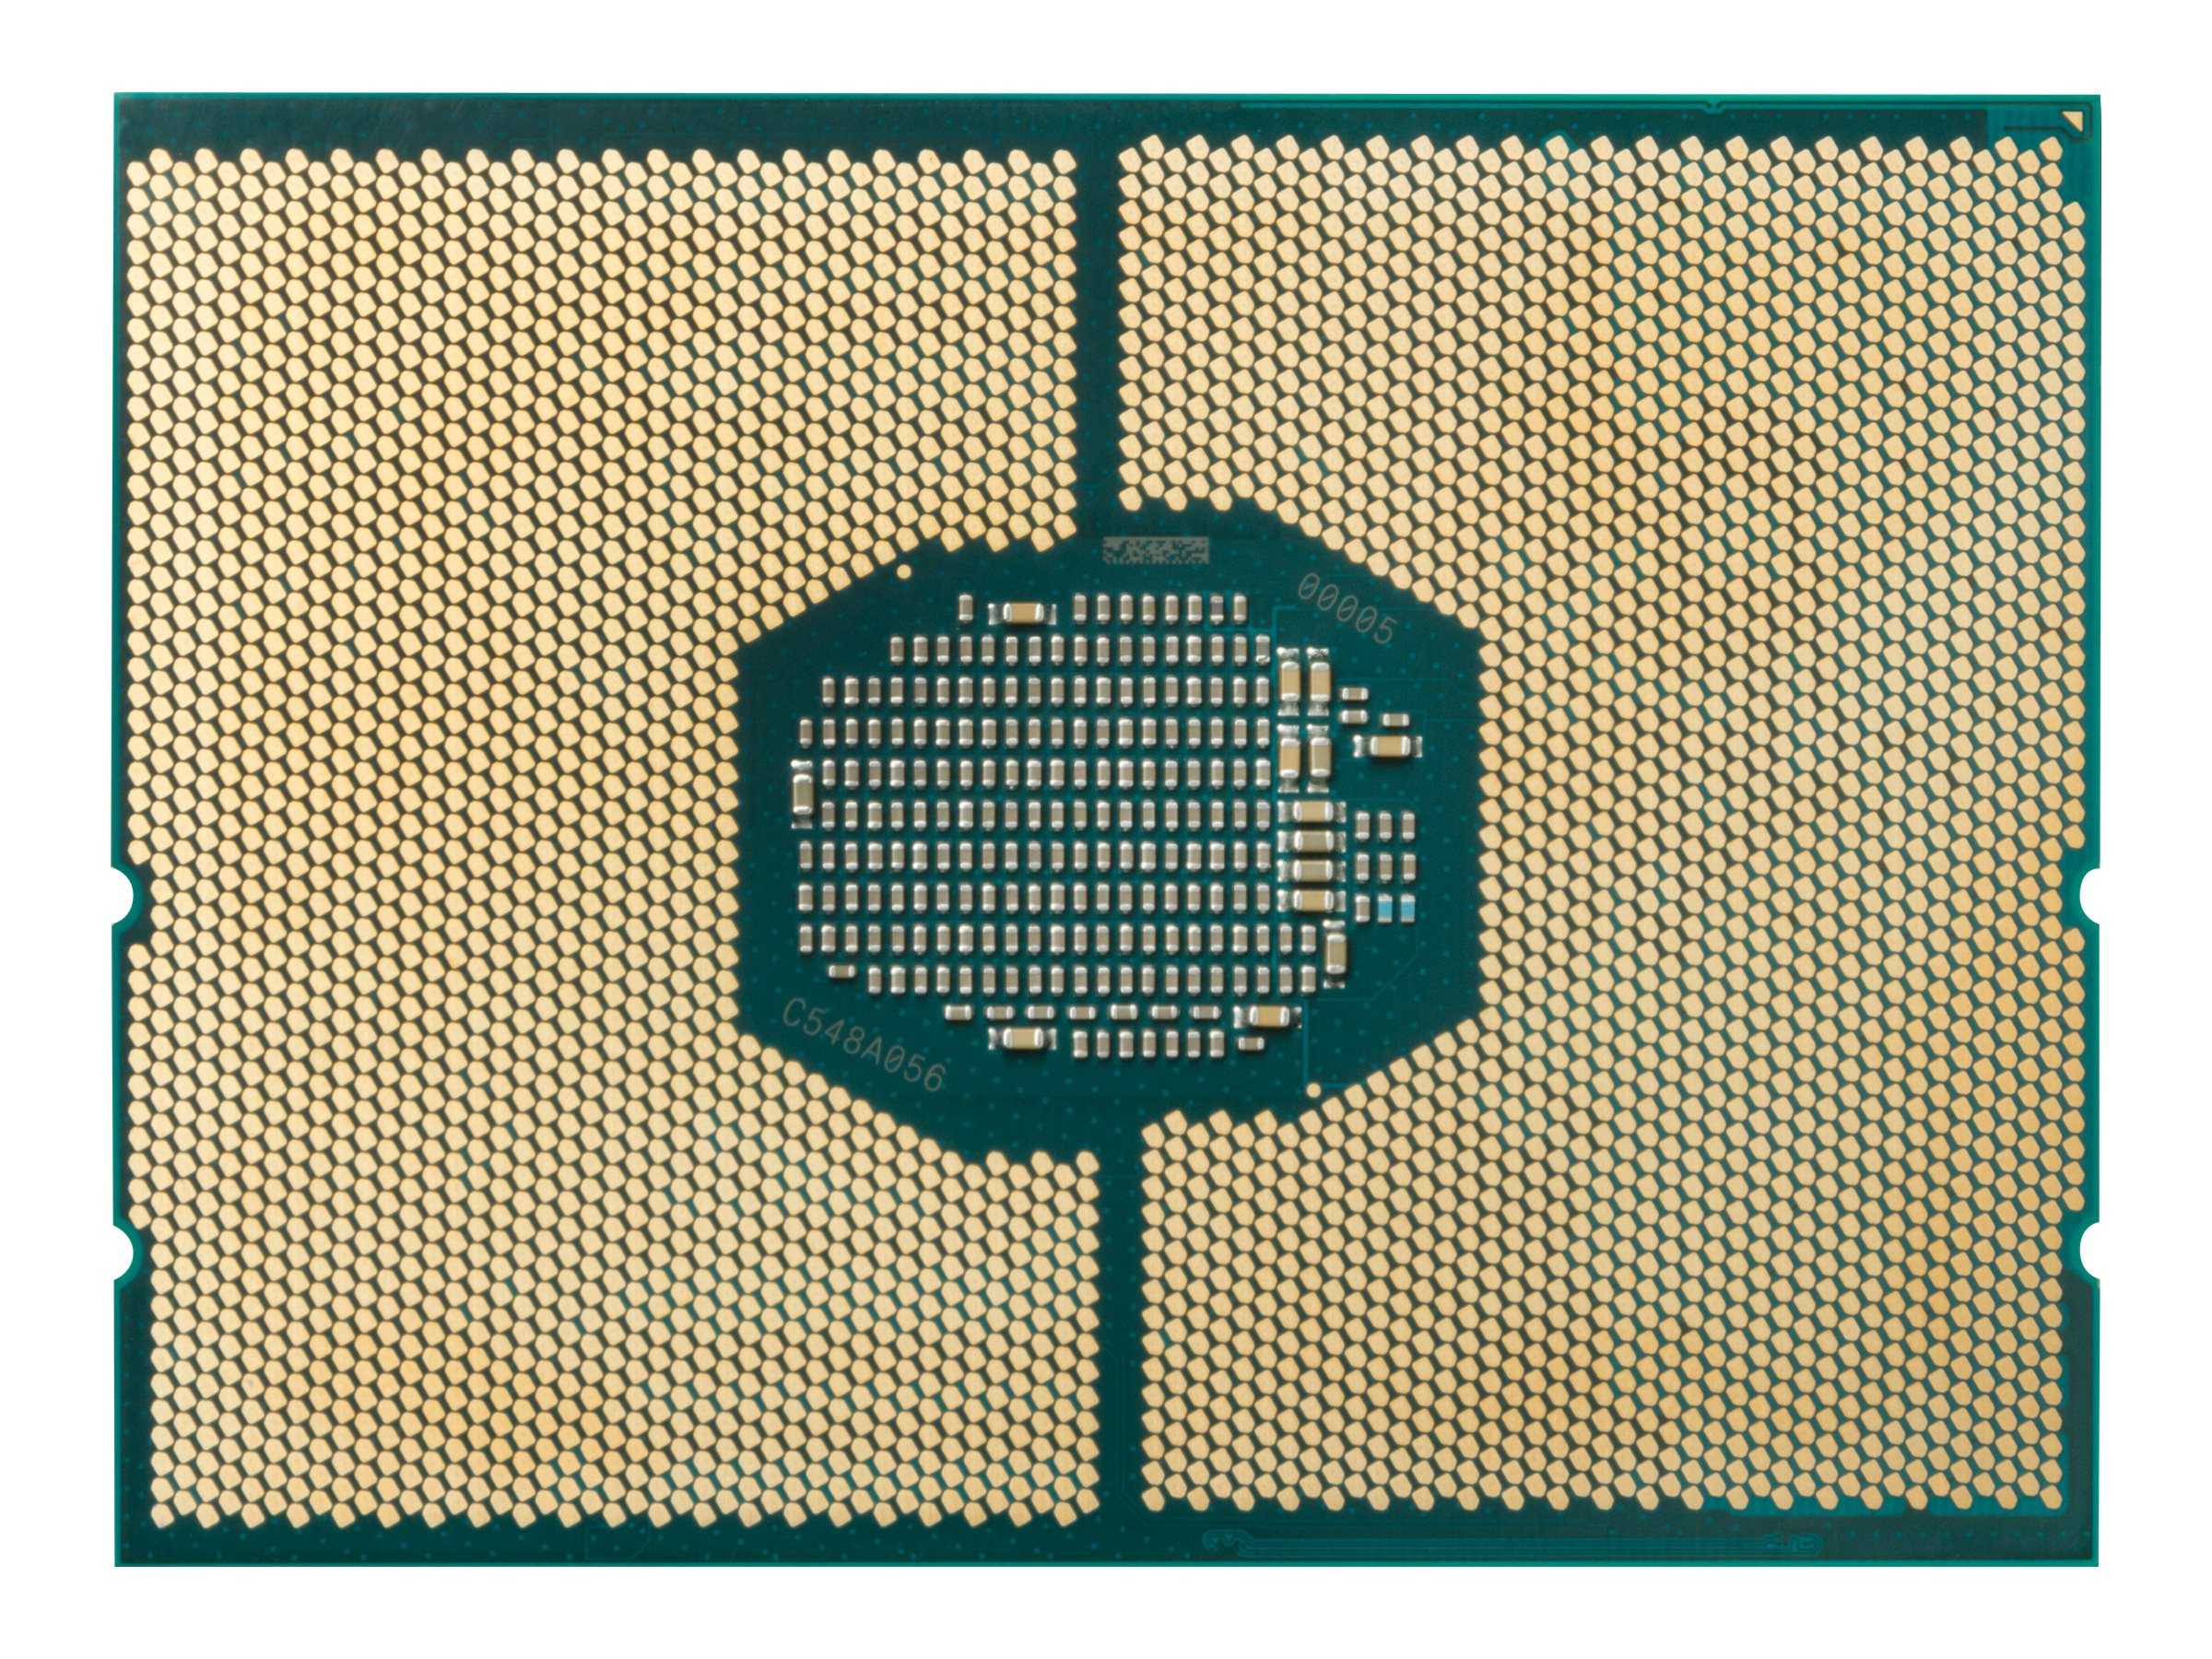 Intel Xeon Gold 6142M / 2.6 GHz processor